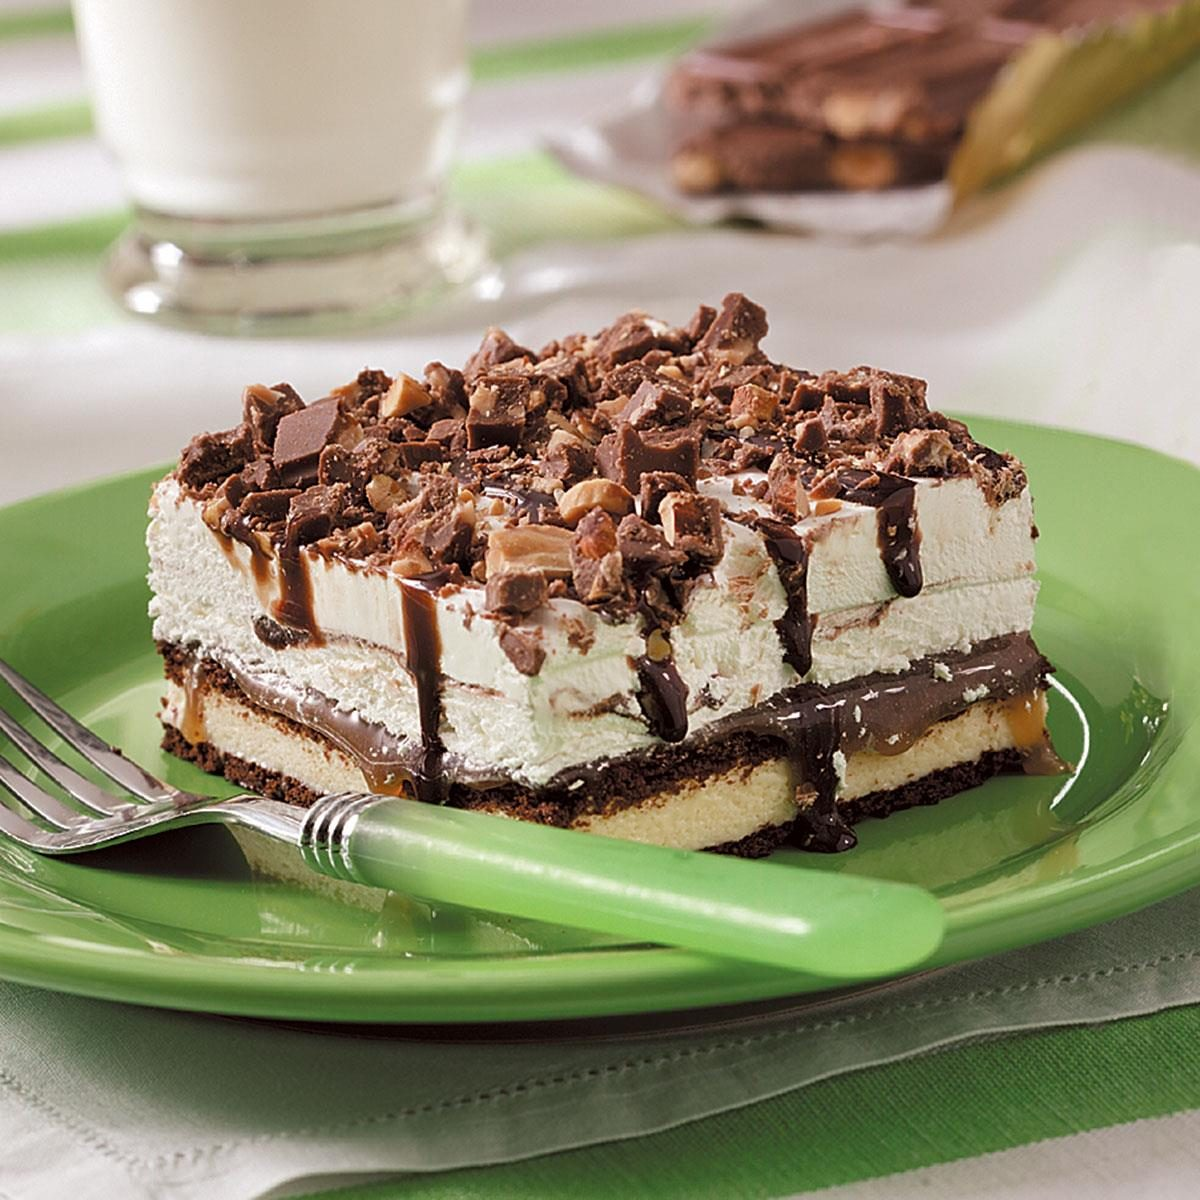 Easy Ice Cream Sandwich Dessert Recipe Taste Of Home